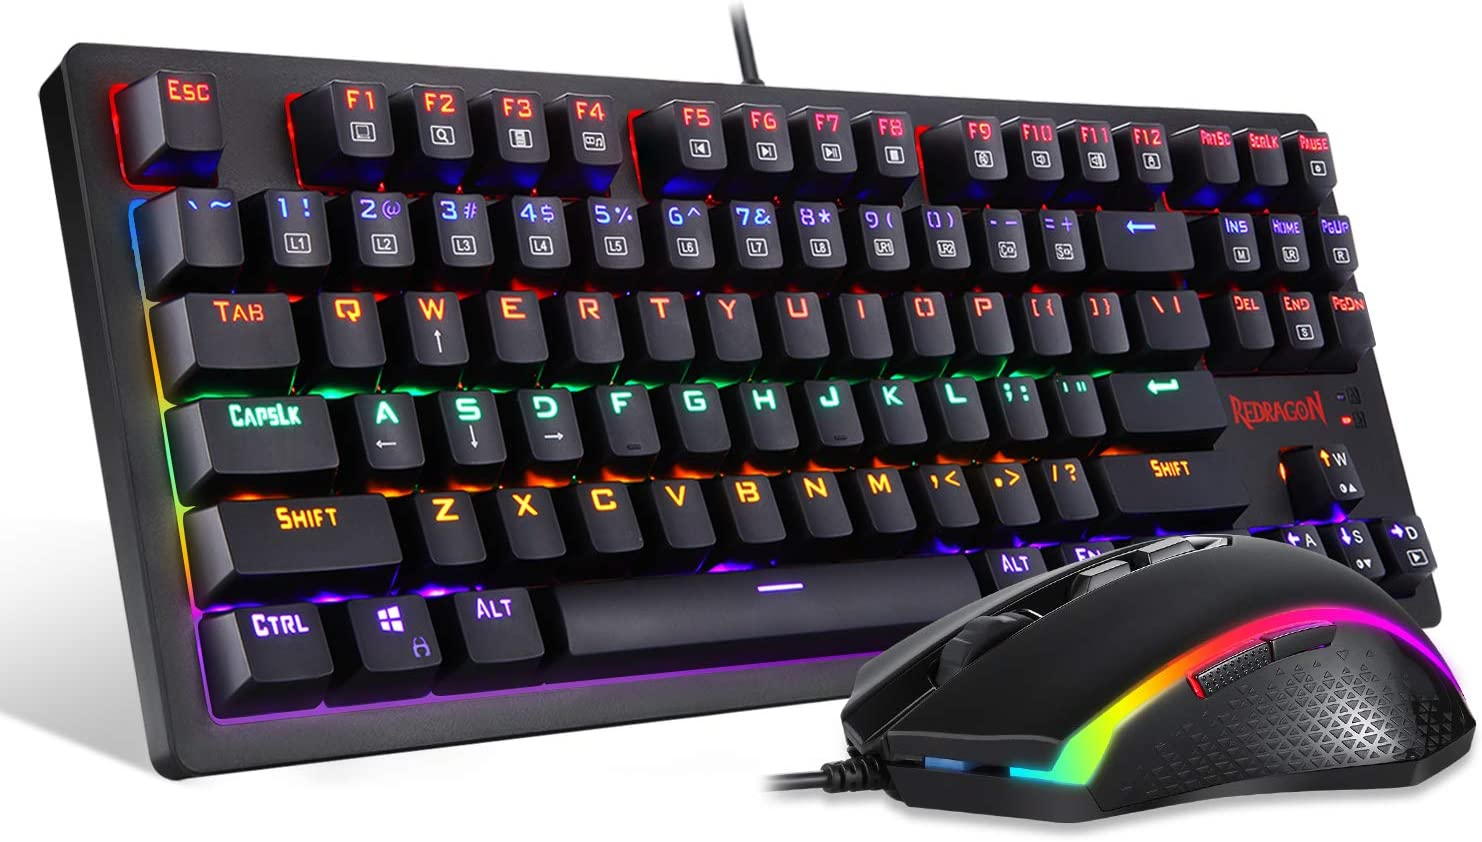 Redragon S113 Gaming Keyboard Mouse Combo Wired Mechanical LED RGB Rainbow Keyboard Backlit with Brown Switches and RGB Gaming Mouse 4200 DPI for Windows PC Gamers